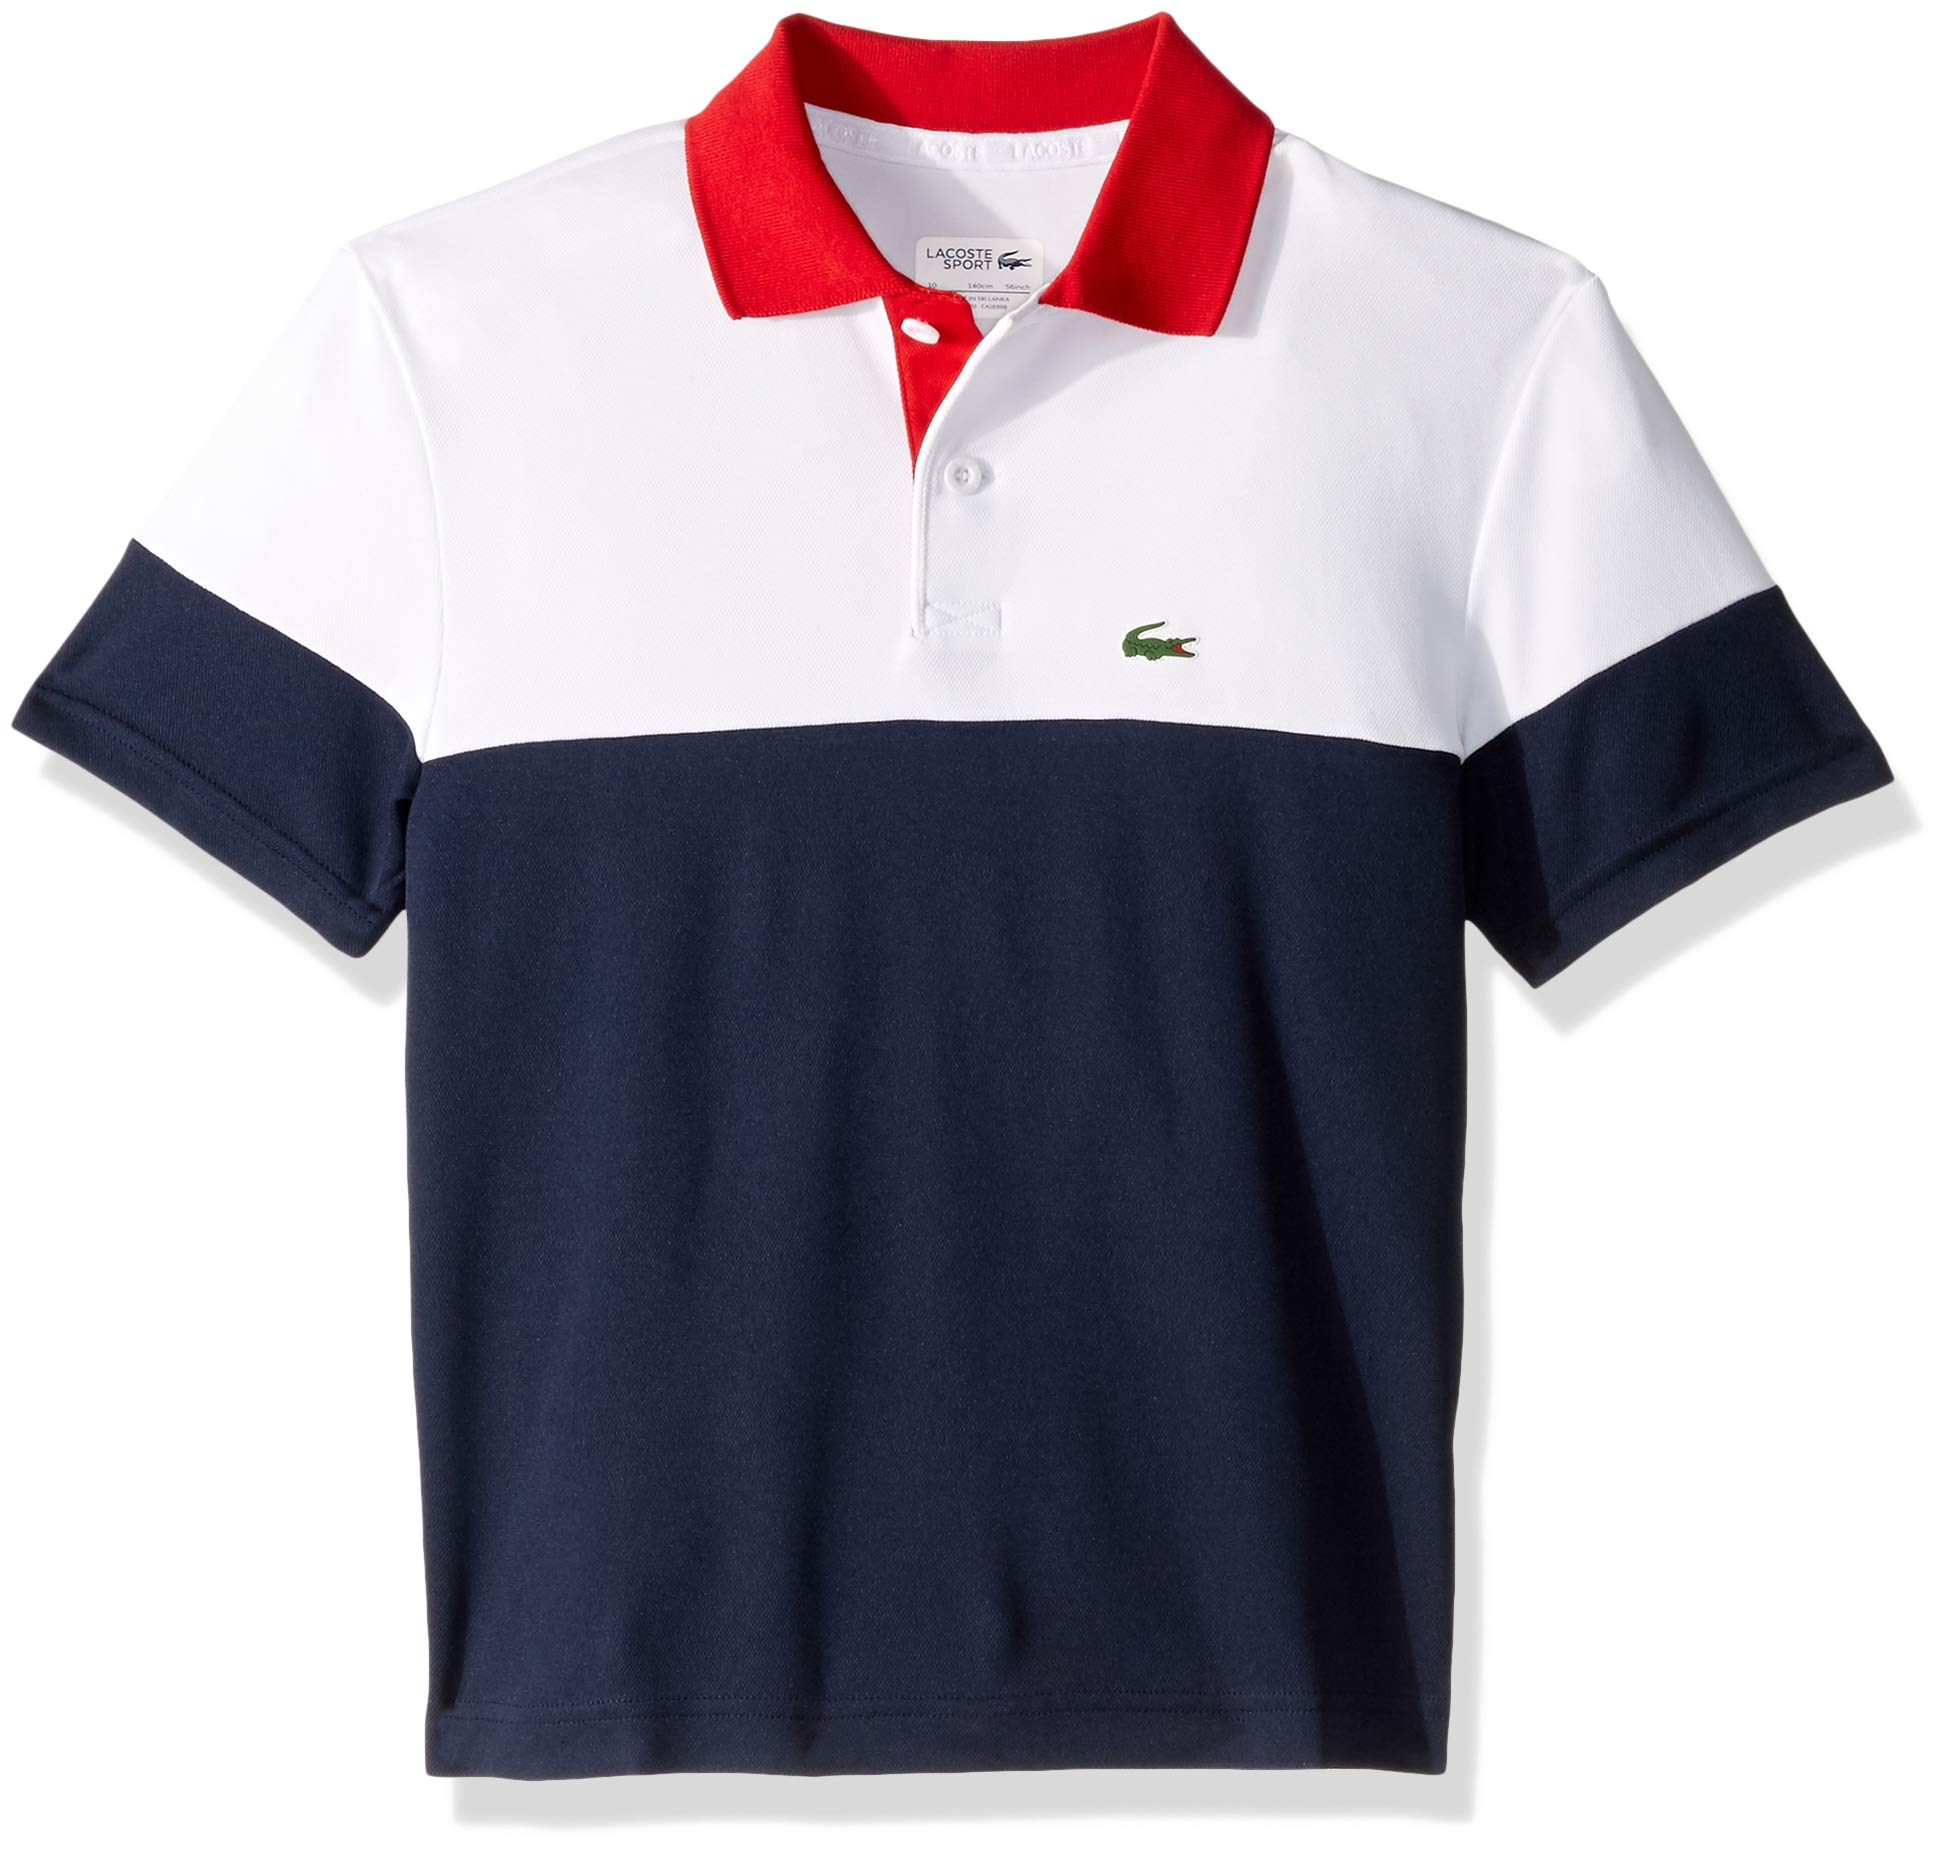 Lacoste Big BOY Poly Color Block Polo, White/Navy Blue/red, 12YR